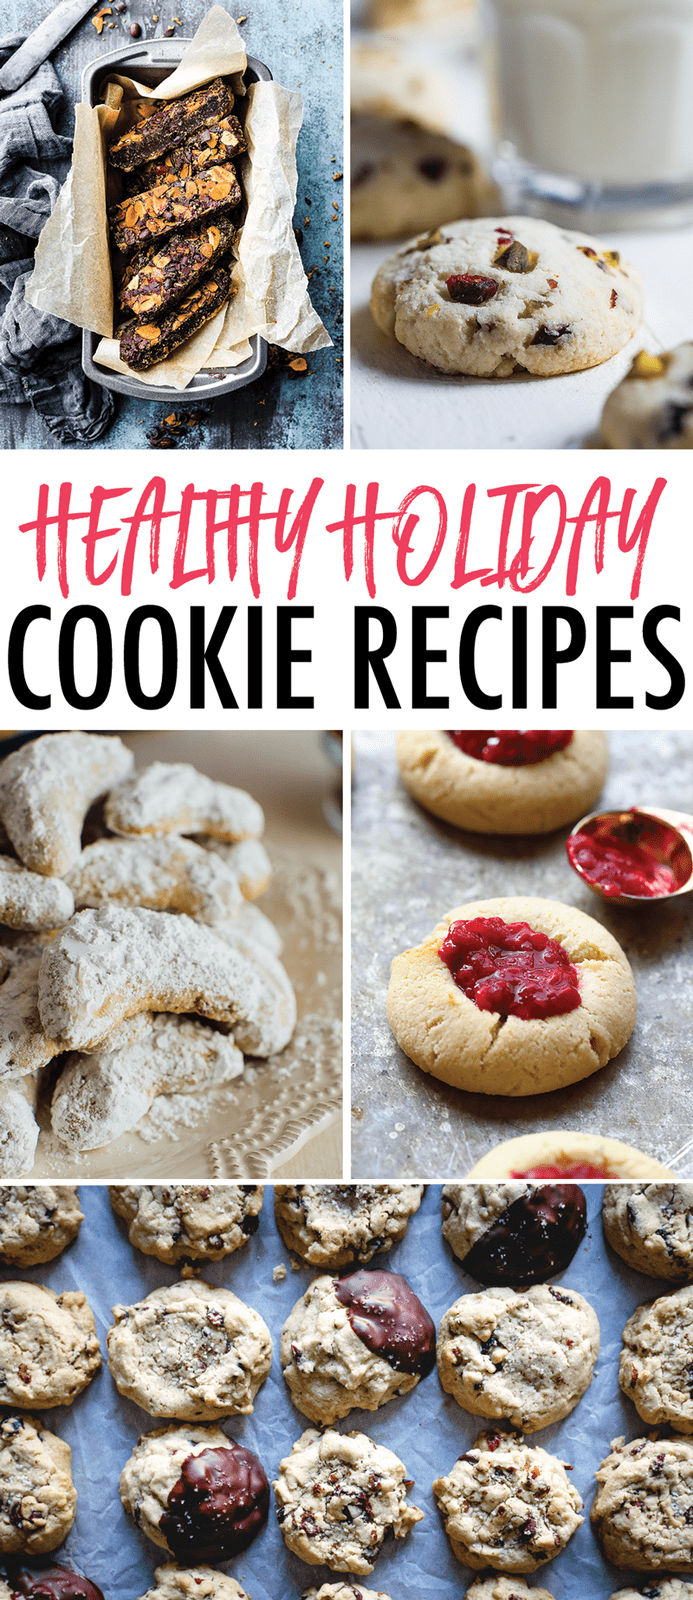 Healthy Holiday Cookie Recipes